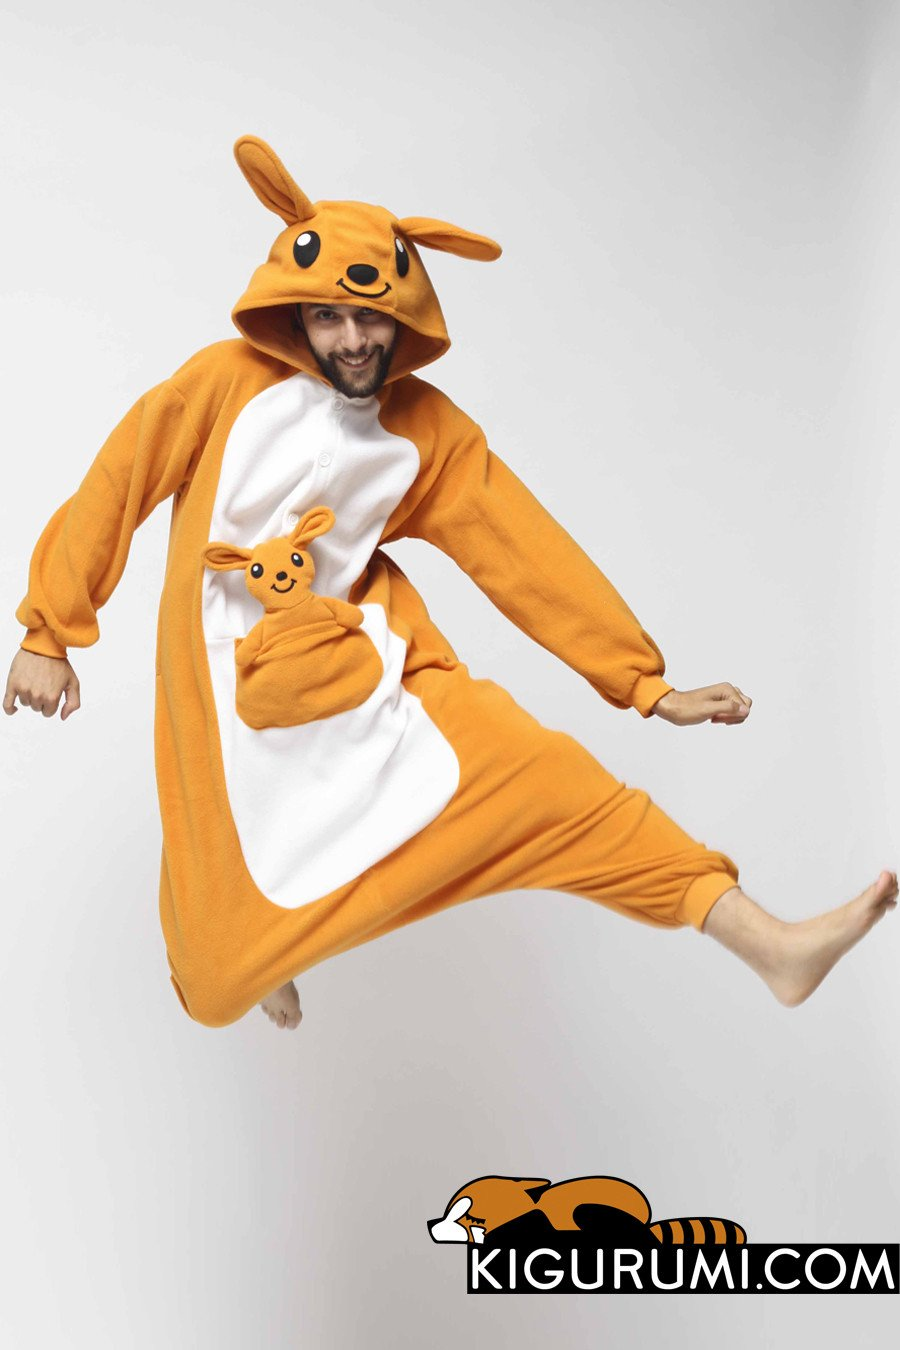 jumping in the air kangaroo kigurumi